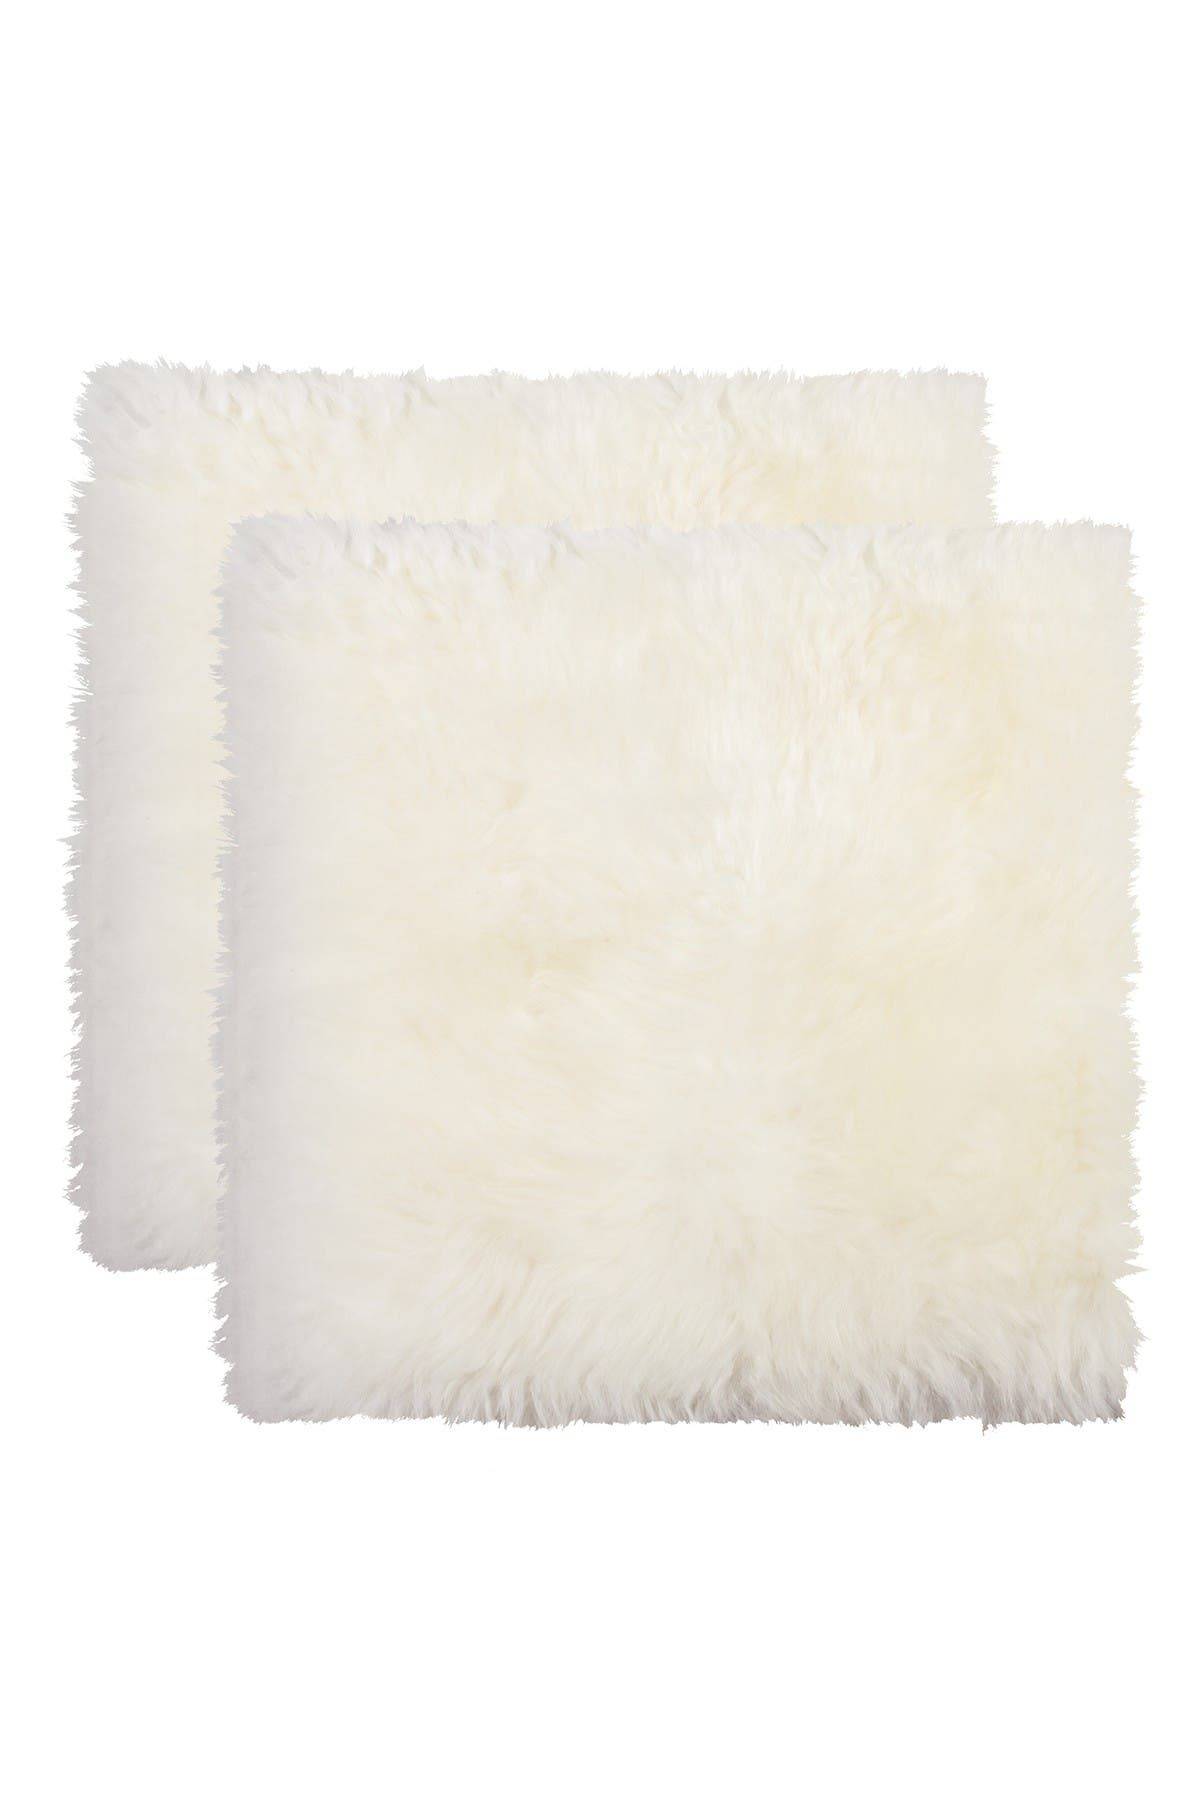 """Image of Natural New Zealand Genuine Sheepskin Chair Seat Pad - Set of 2 - 17""""x17"""" - Natural"""